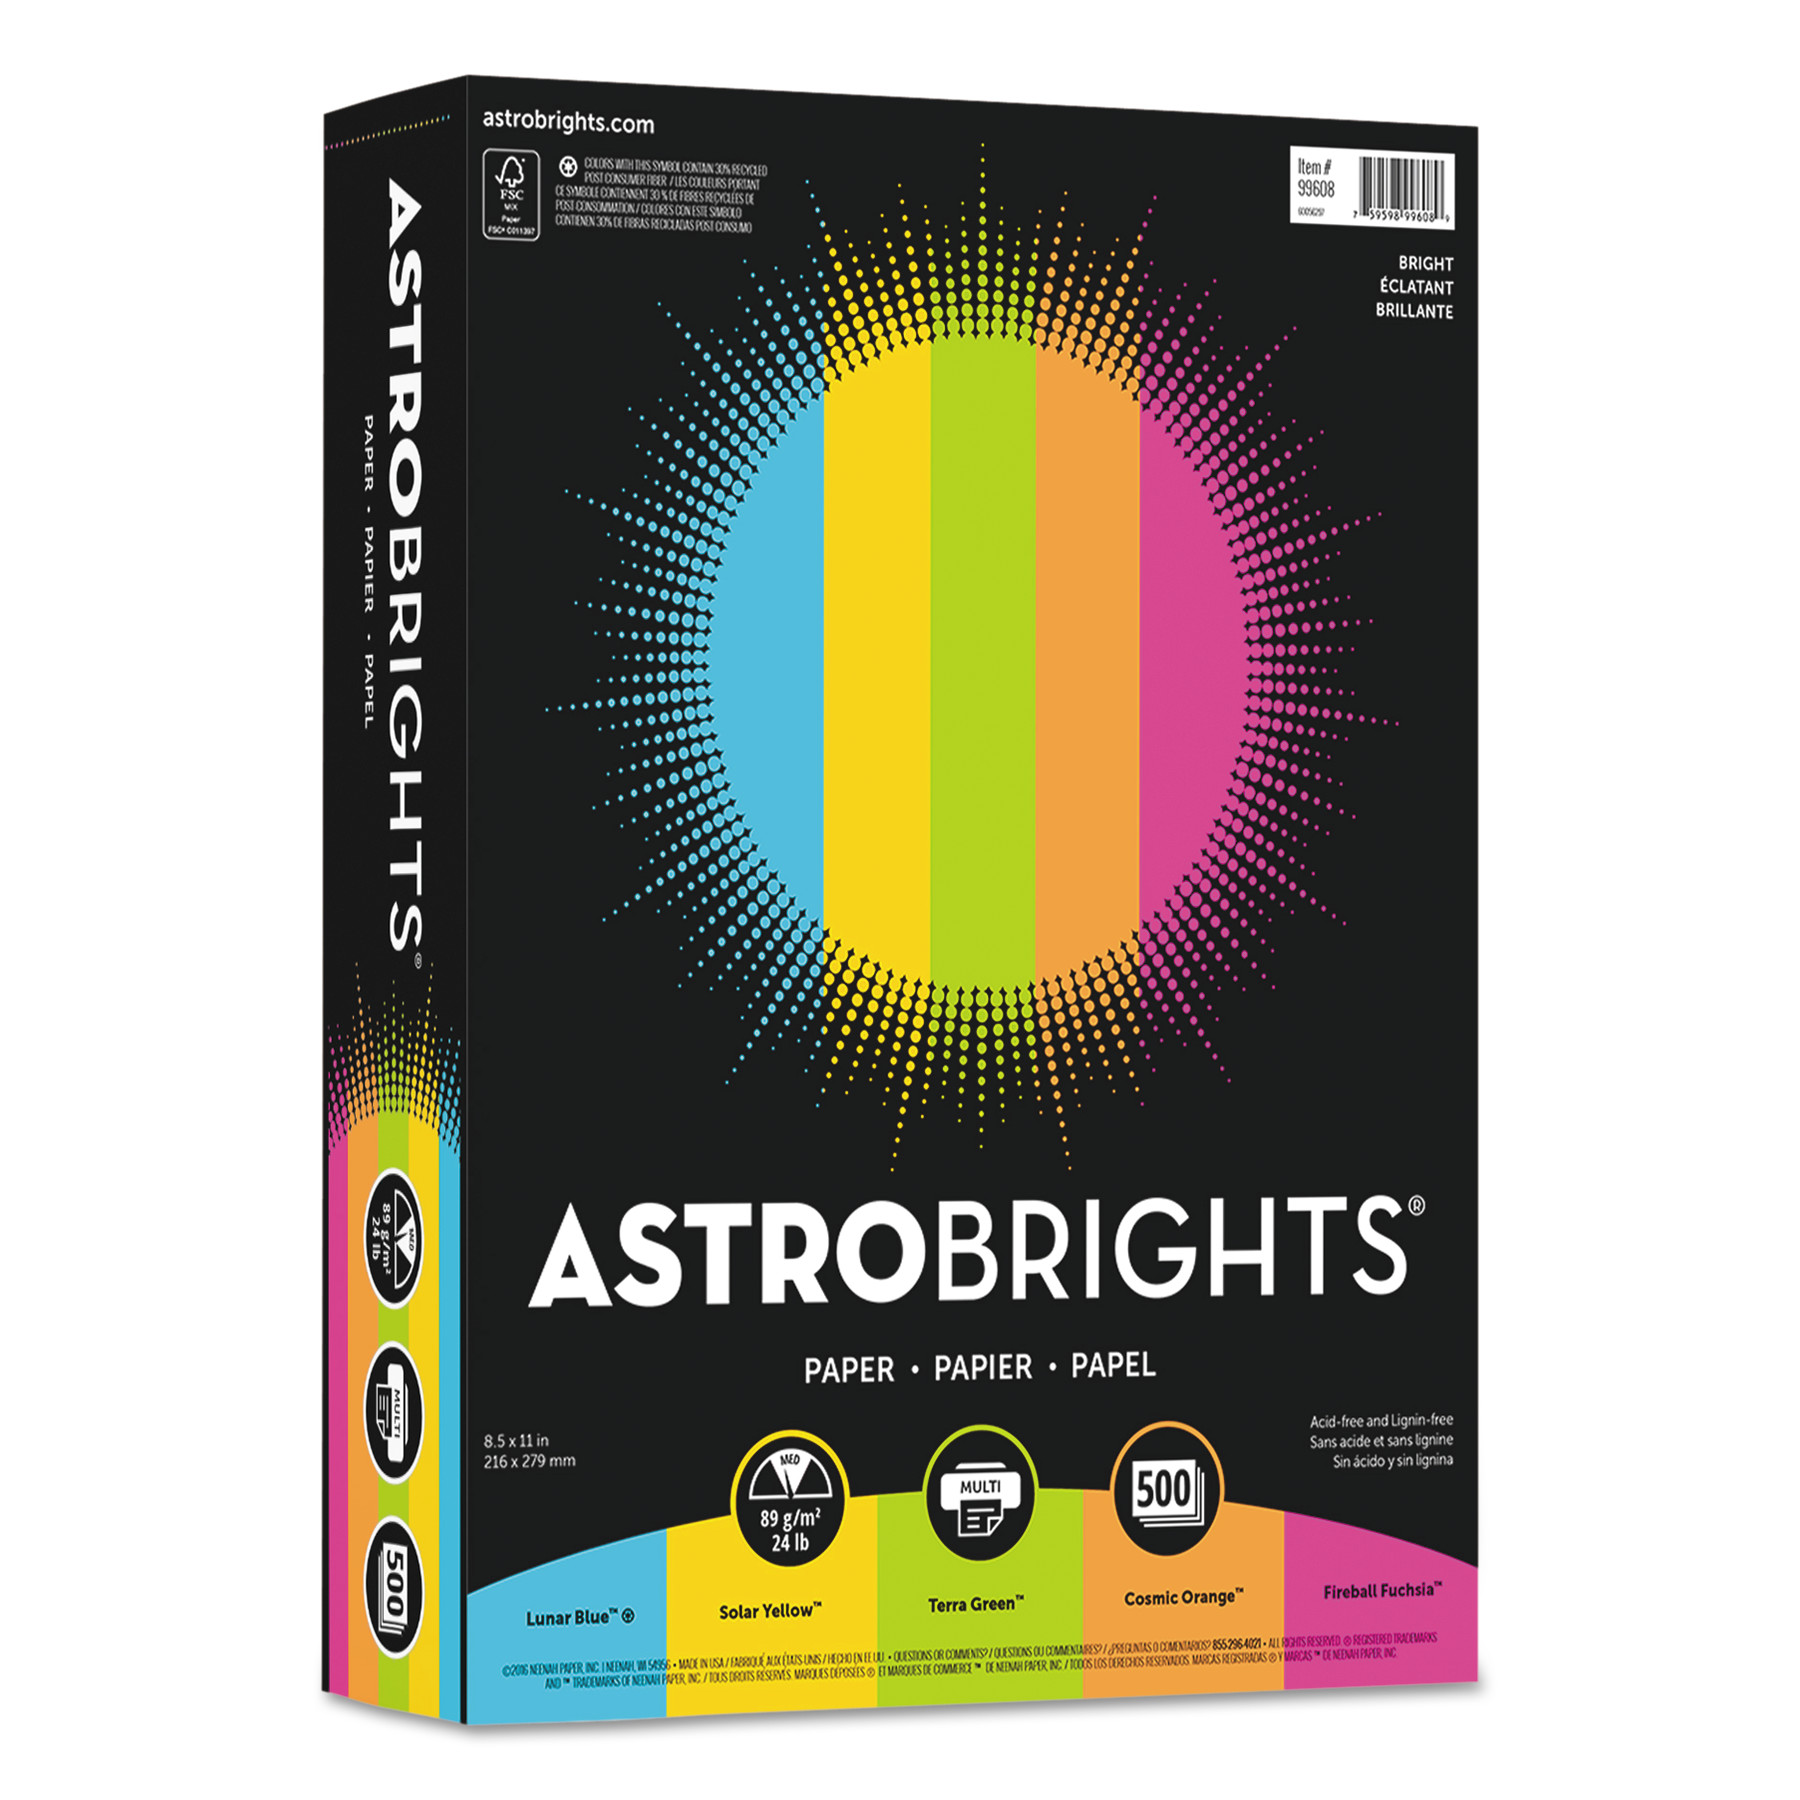 "Astrobrights Color Paper -""Bright"" Assortment, 8 1/2 x 11, 5 Colors, 24lb, 500 Sheets -WAU99608"